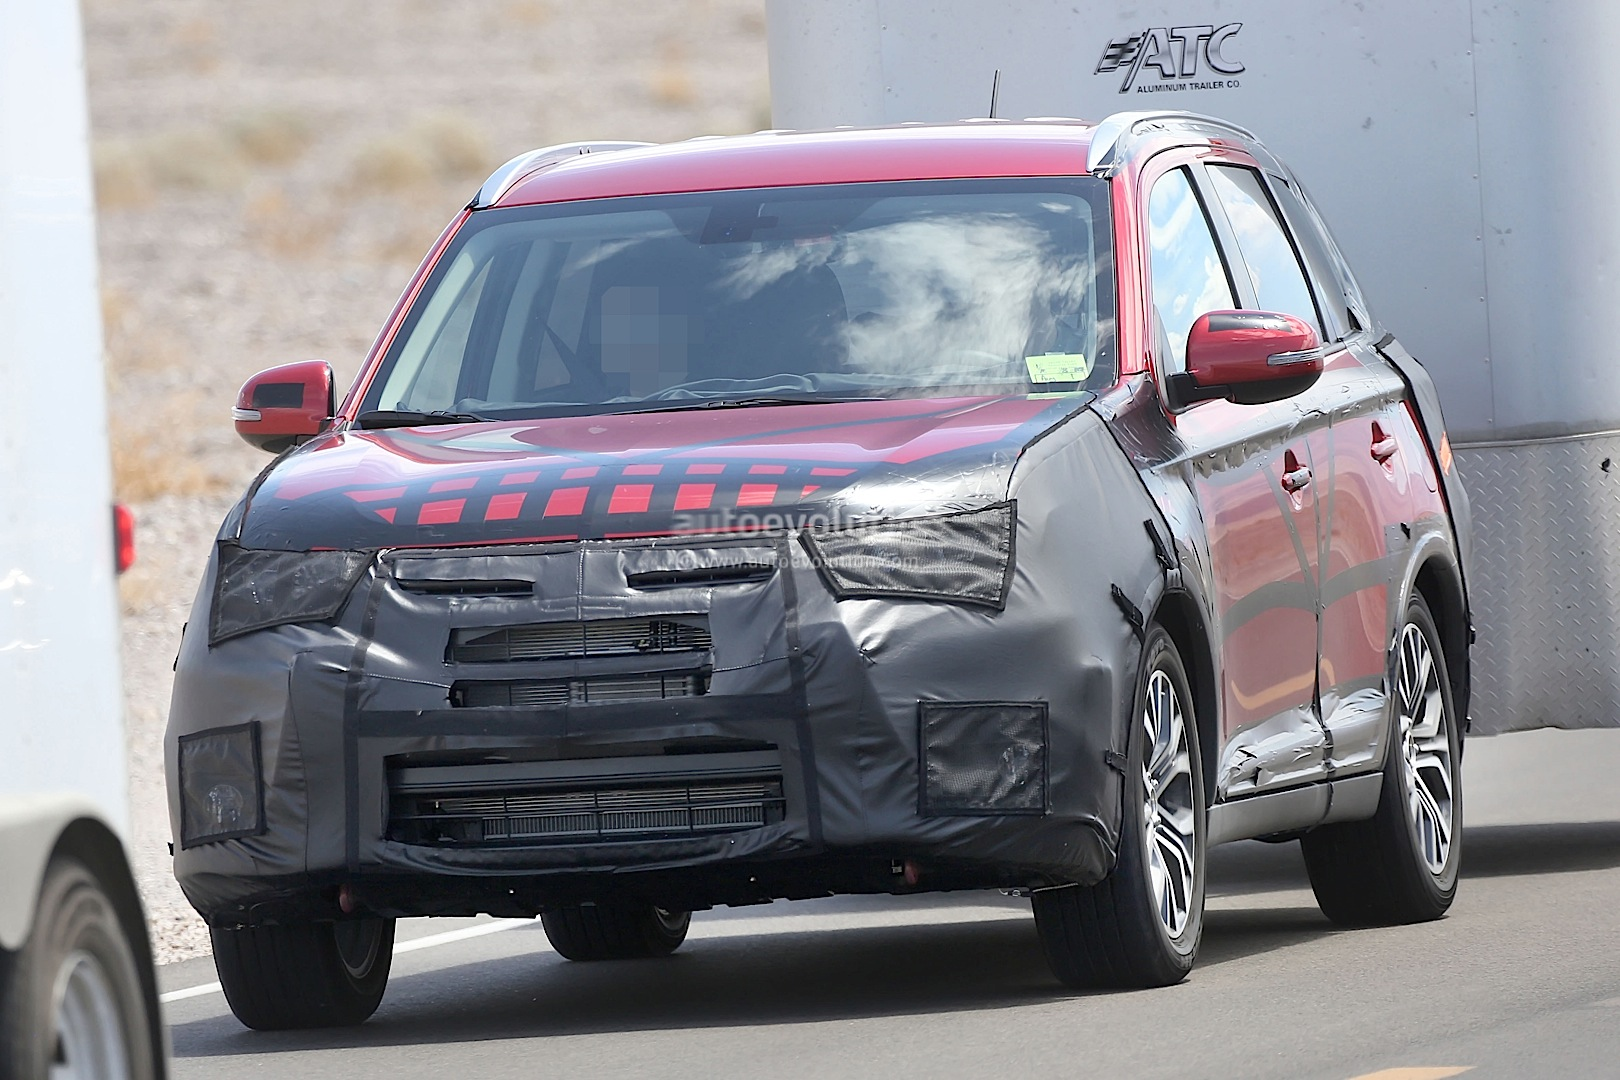 2015 Mitsubishi Outlander Facelift Spied Towing a Trailer - autoevolution